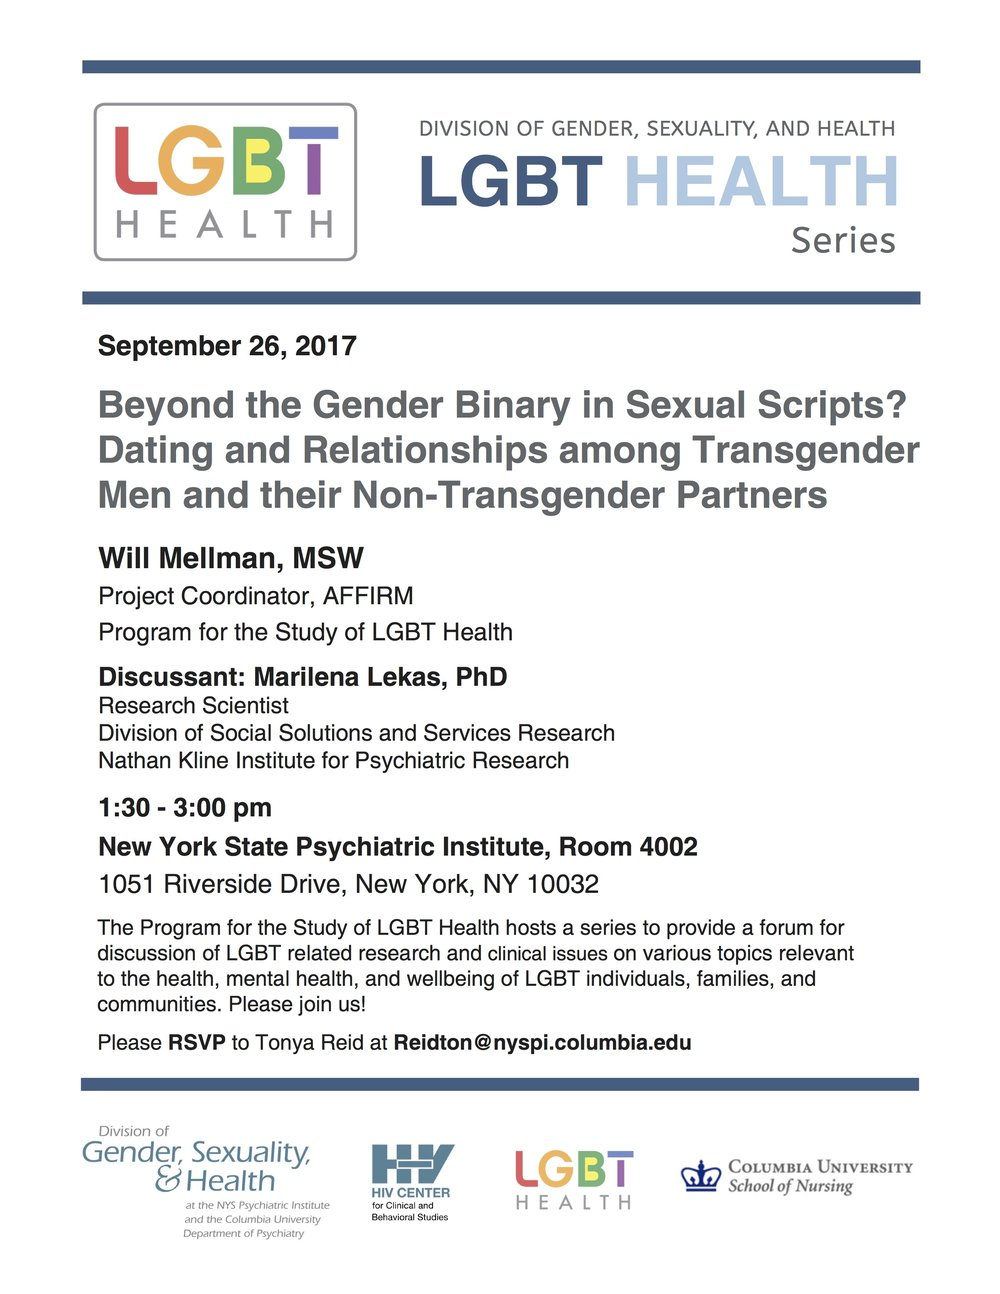 LGBT Health Series Sept 26 2017.jpg